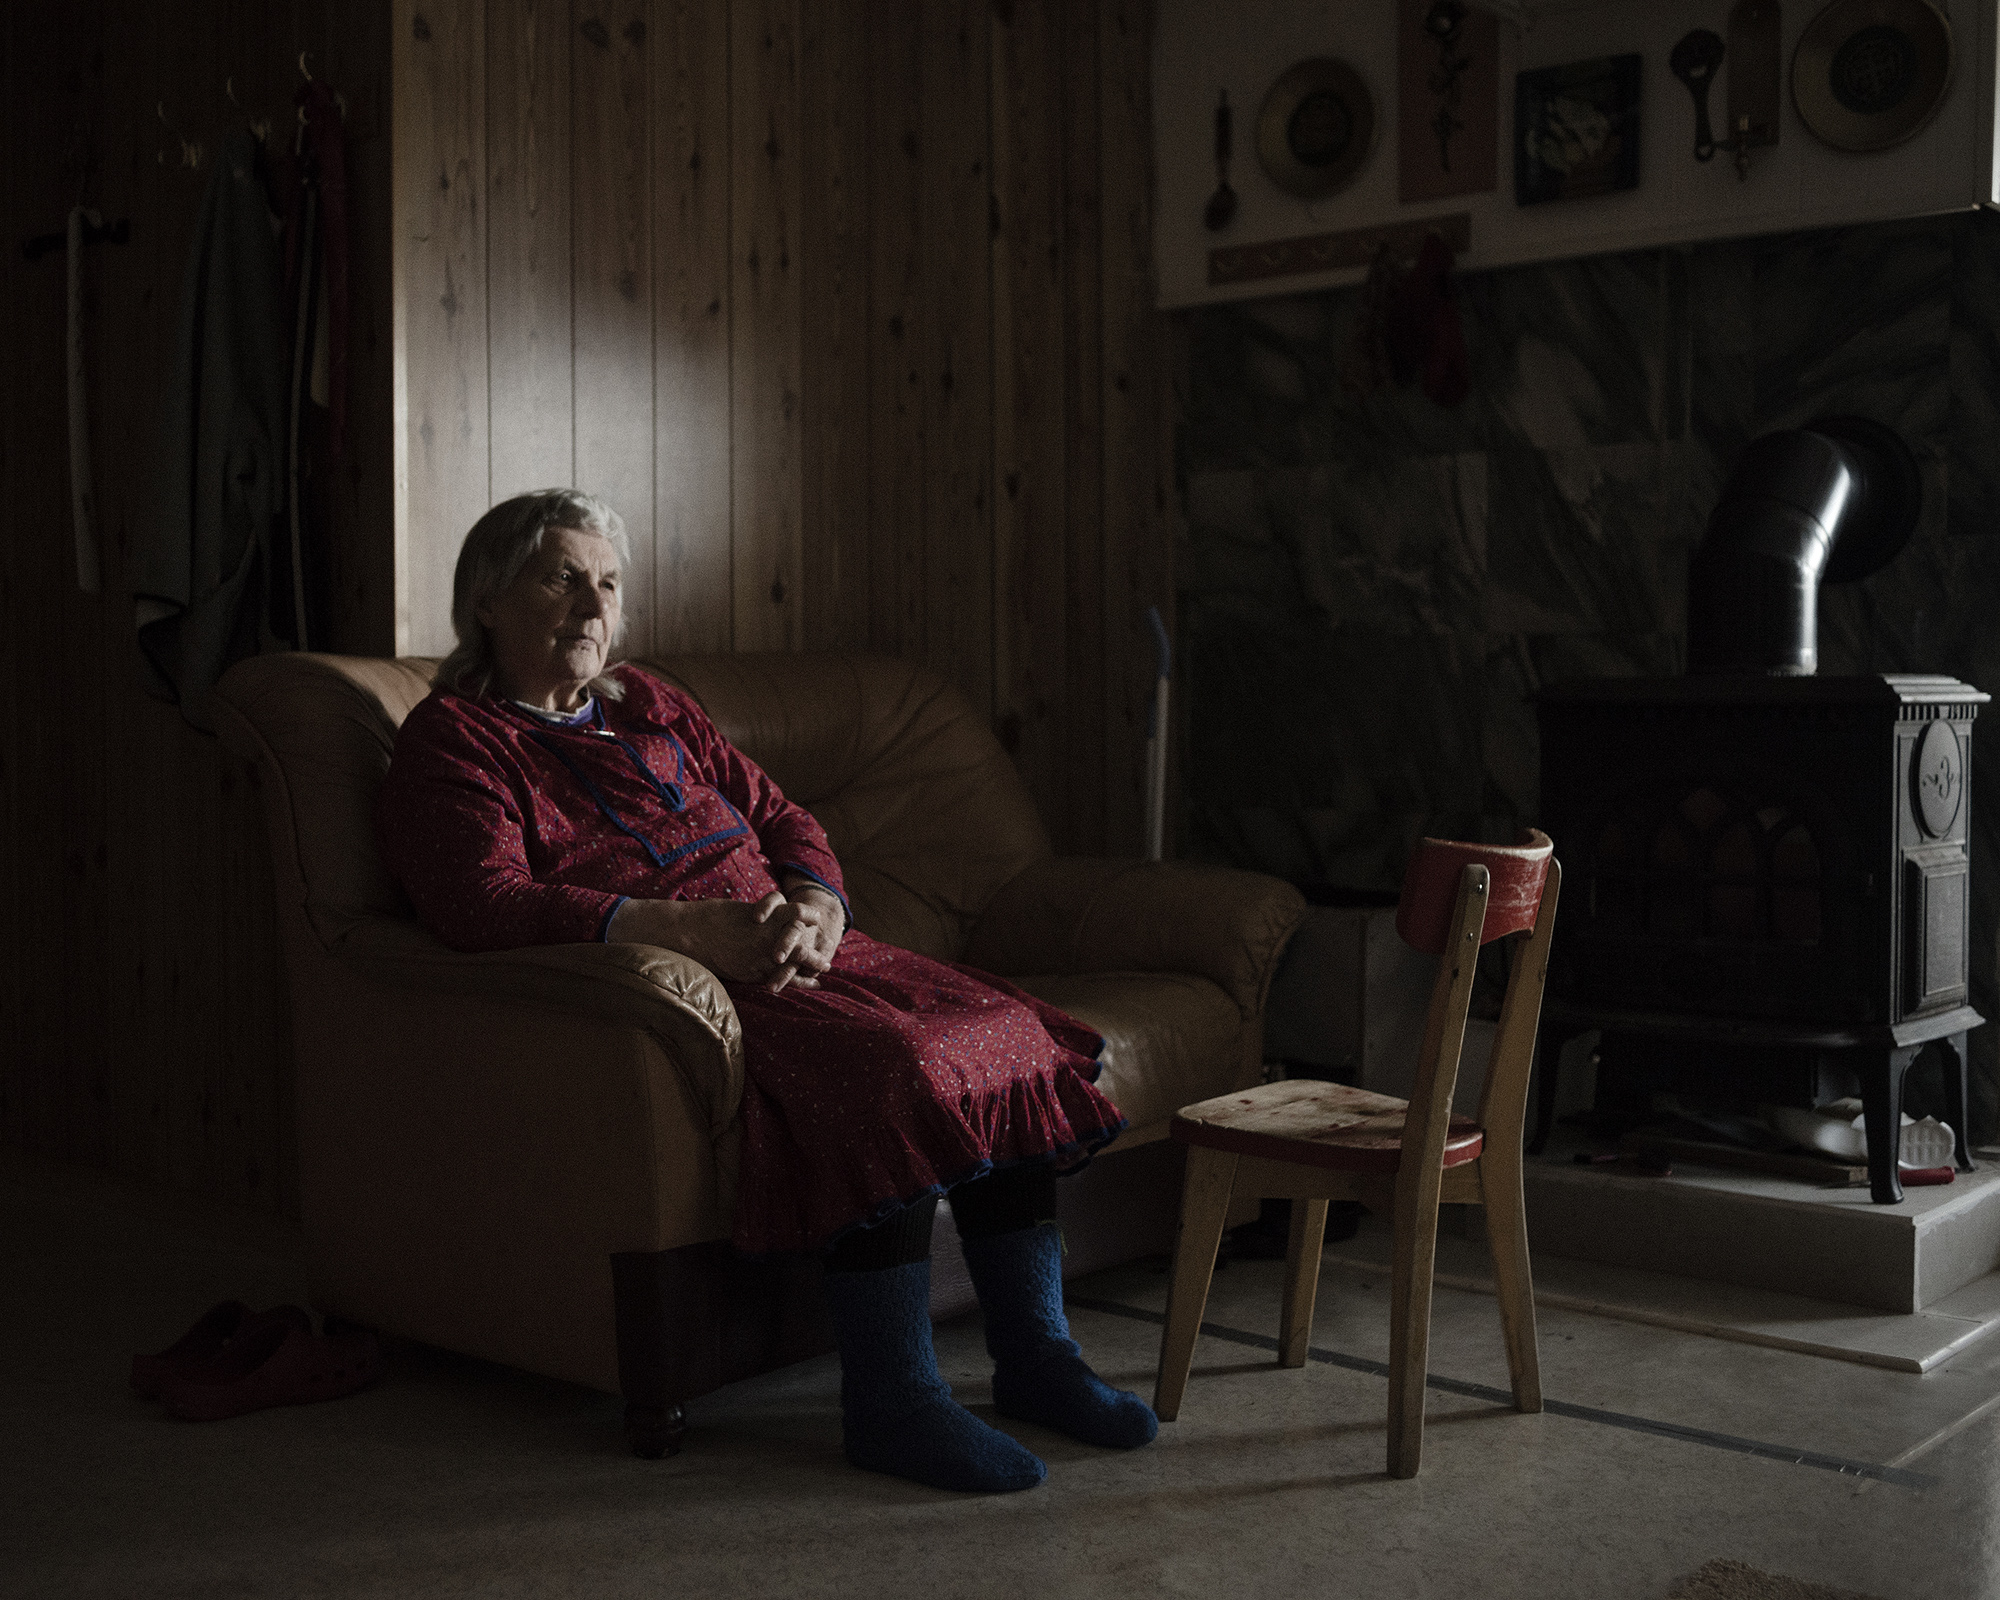 """Marit Sara, 84, from Kautokeino, Norway, has been working as a reindeer herder all her life. The winters today bring new challenges that make it difficult to preserve the semi-nomadic way of life. The ice layers that now form beneath snow make it difficult for the reindeer to reach lichen – their primary food source – so herders must feed them. This type of ice previously only formed during bad years, but it has now become a yearly problem.  Marit Sara says that in her younger days, the river would freeze as clear as glass during wintertime, and she would use fallen reindeer antlers to slide across the ice on her knees. """"That's different now. The ice doesn't get clear anymore."""" (Camilla Andersen/GroundTruth)"""